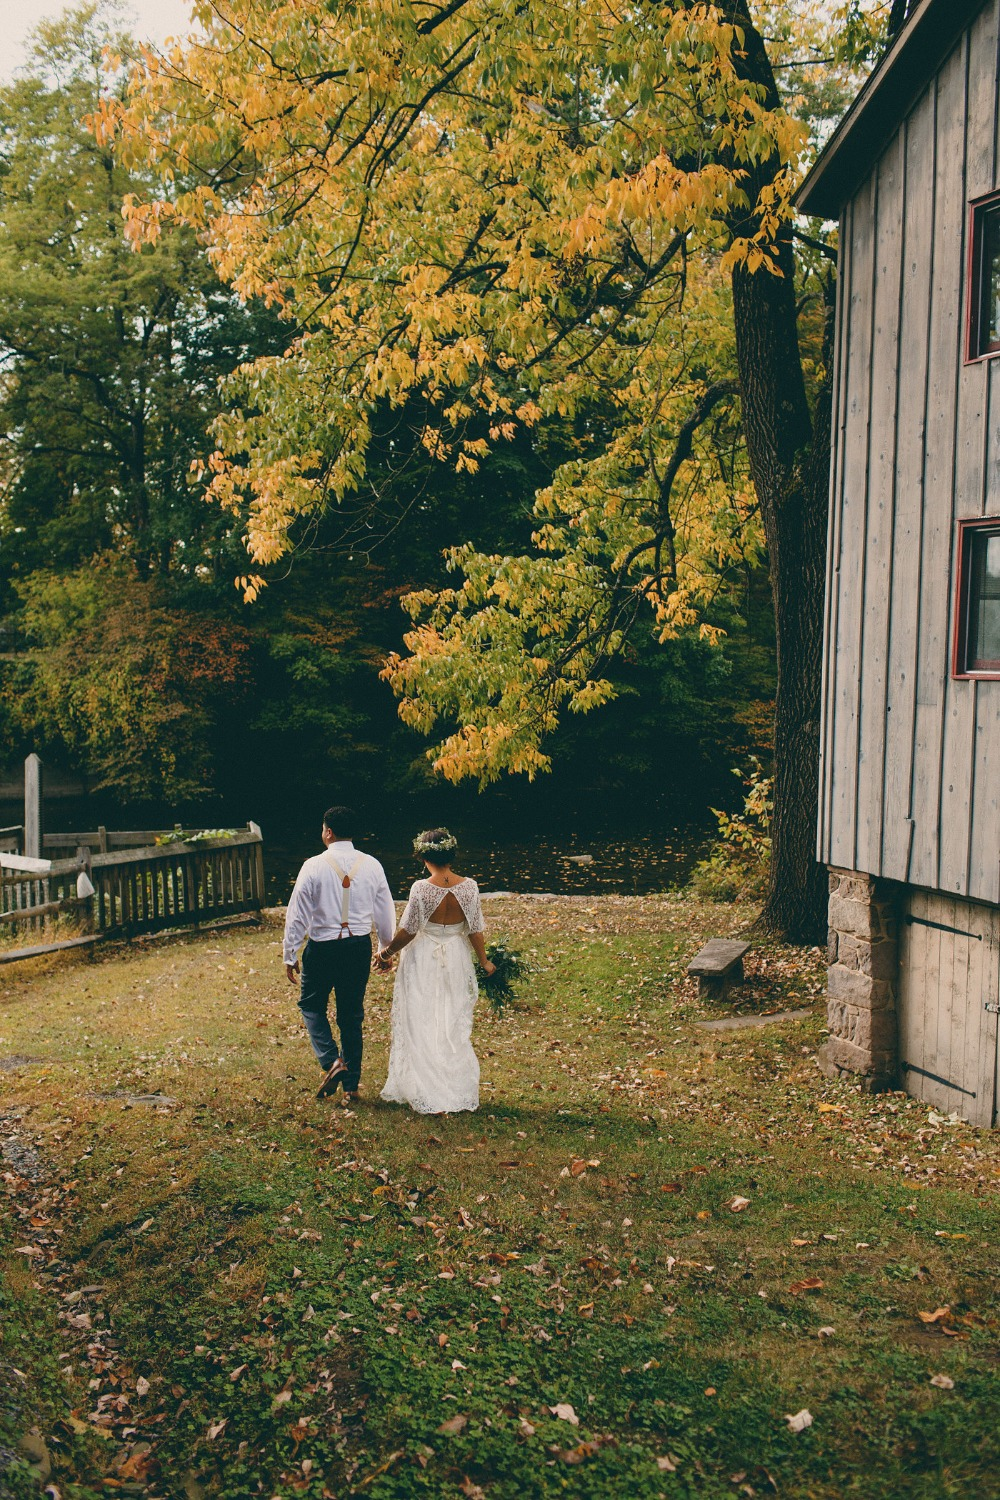 weddings in the fall